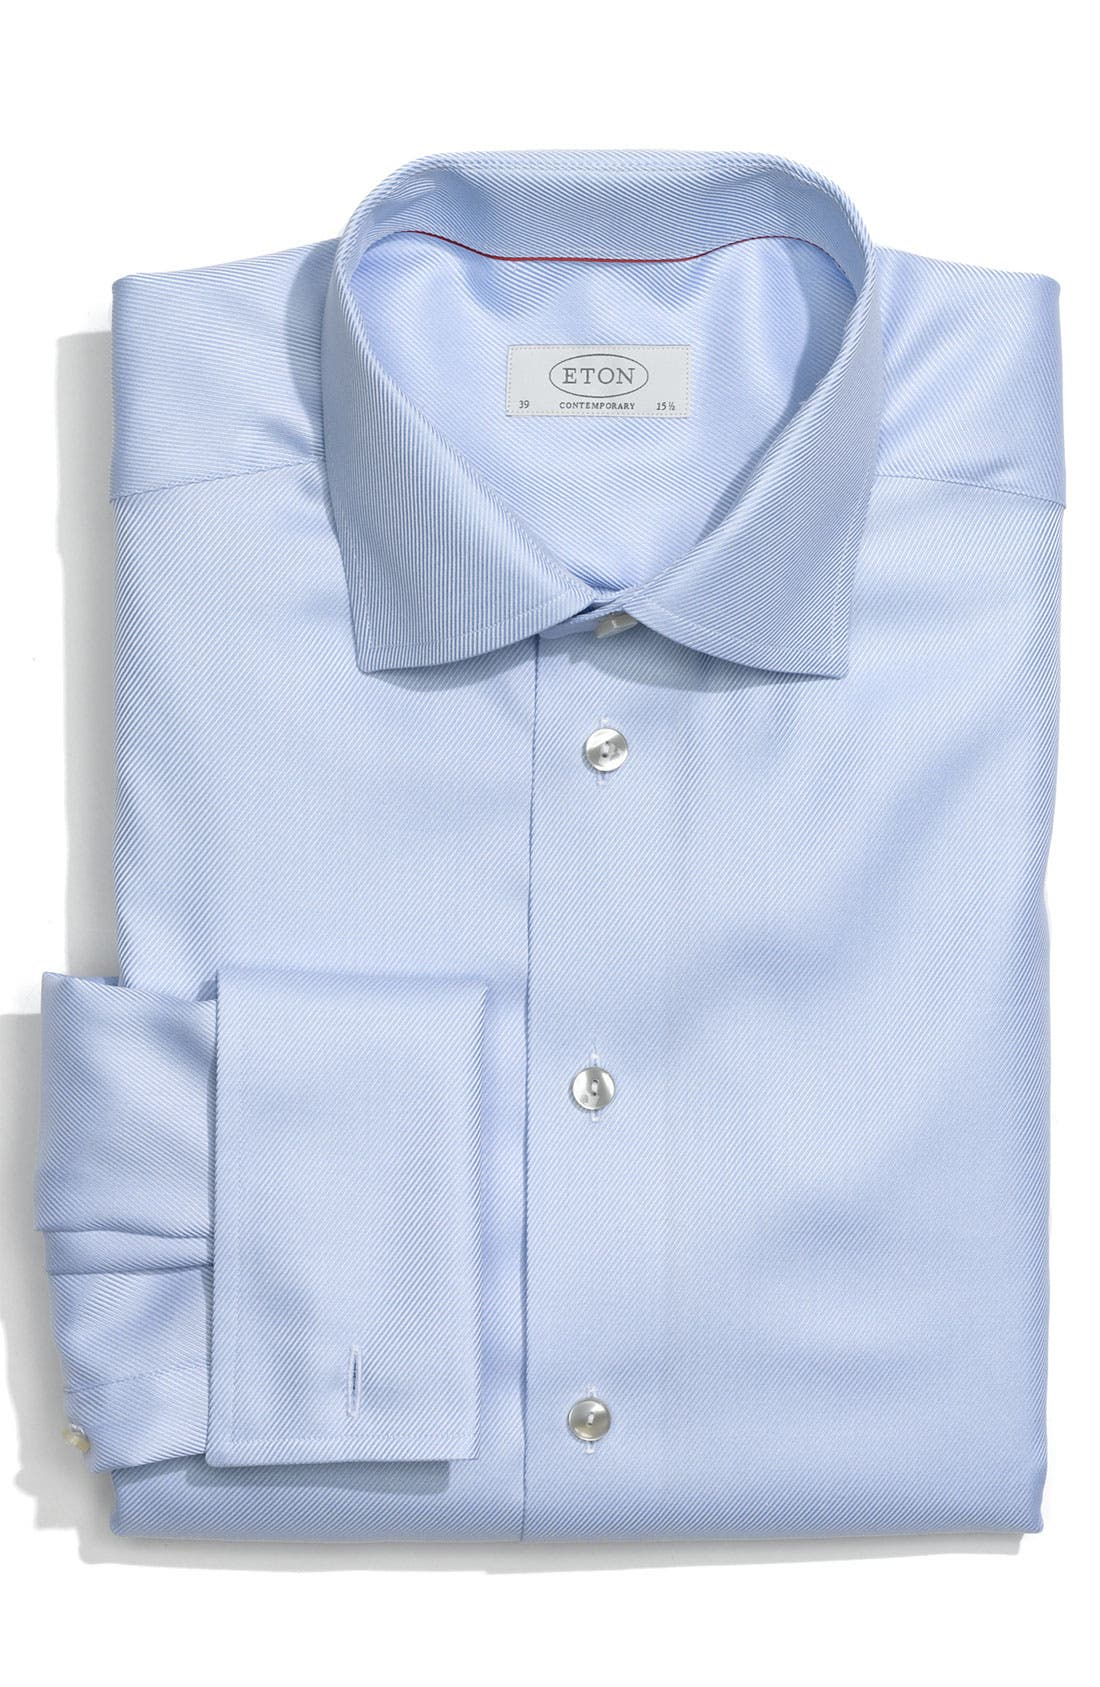 Main Image - Eton Contemporary Fit Dress Shirt (Online Only)